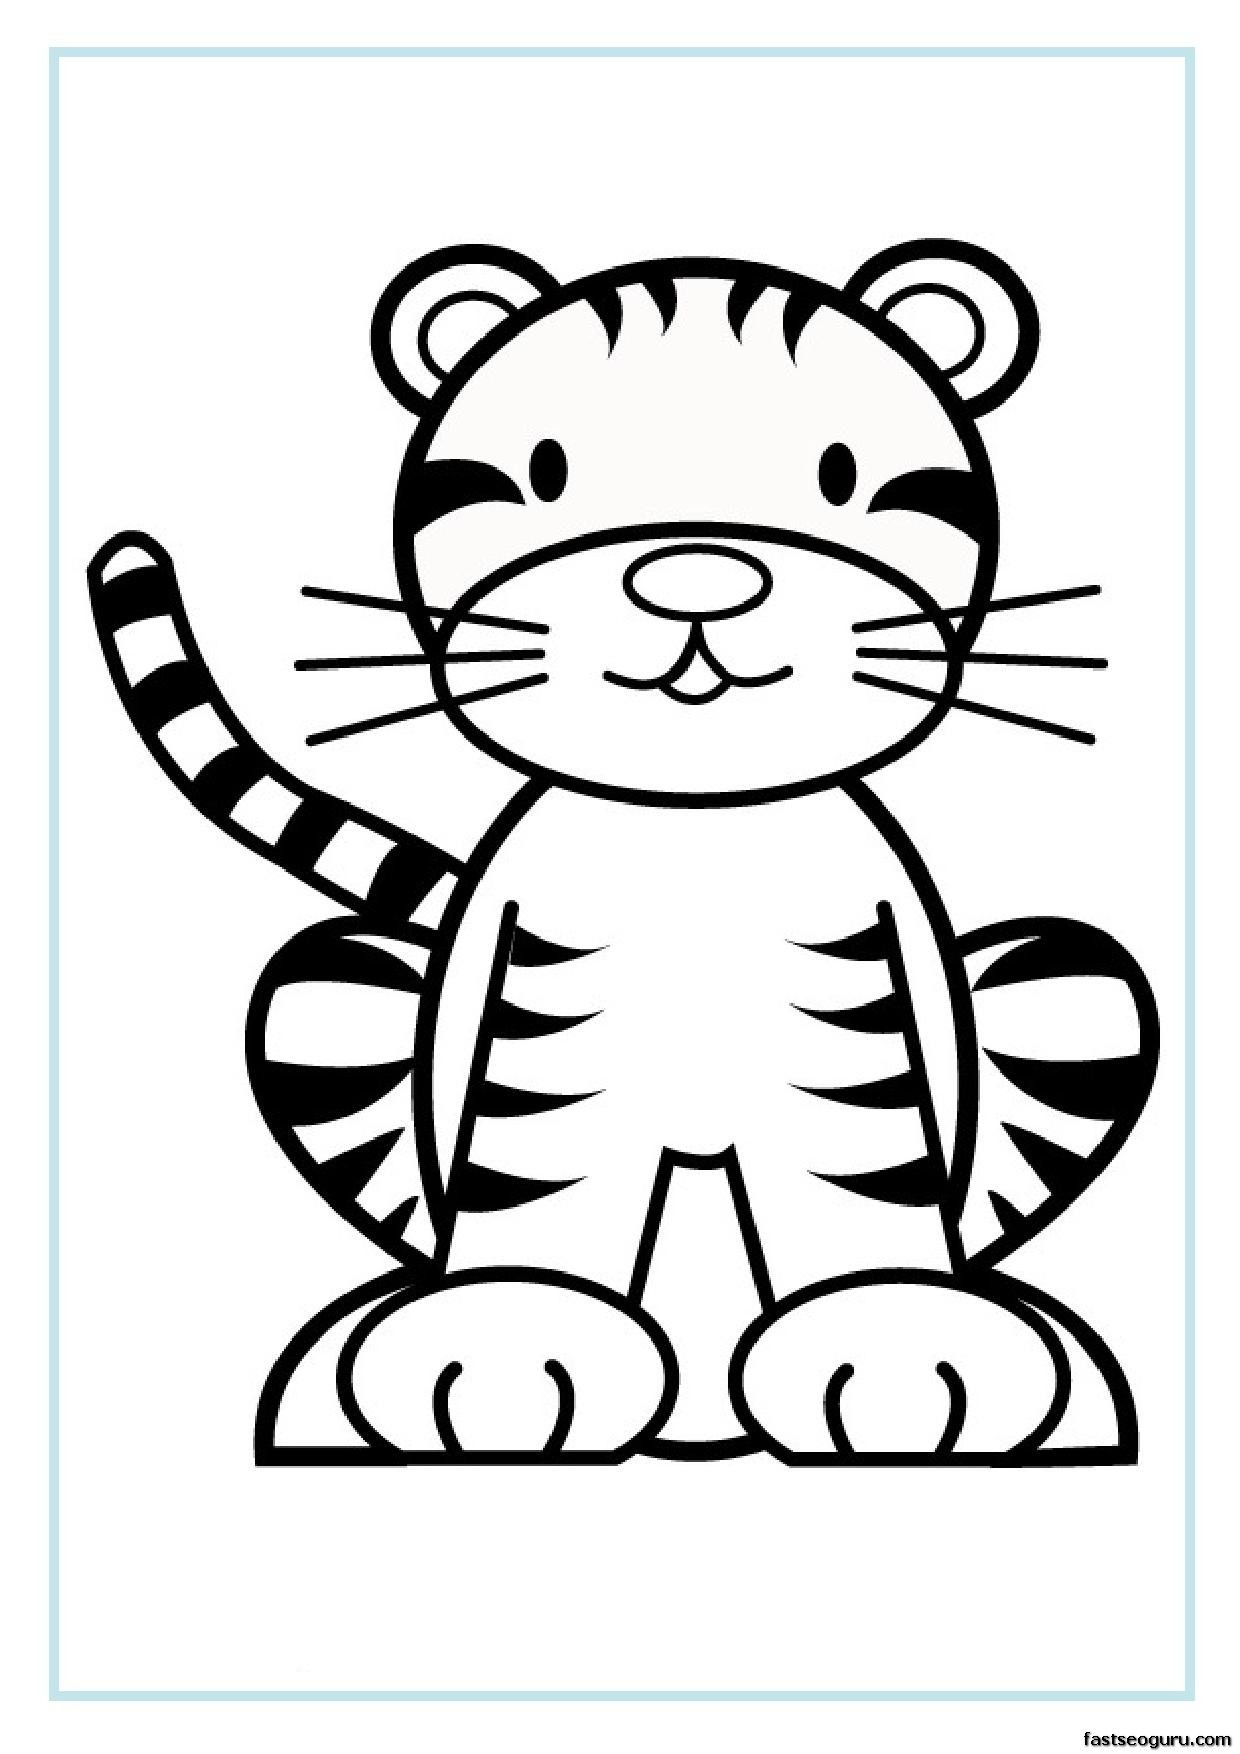 Baby Tiger Coloring Pages For Free Printable Coloring Page Tiger